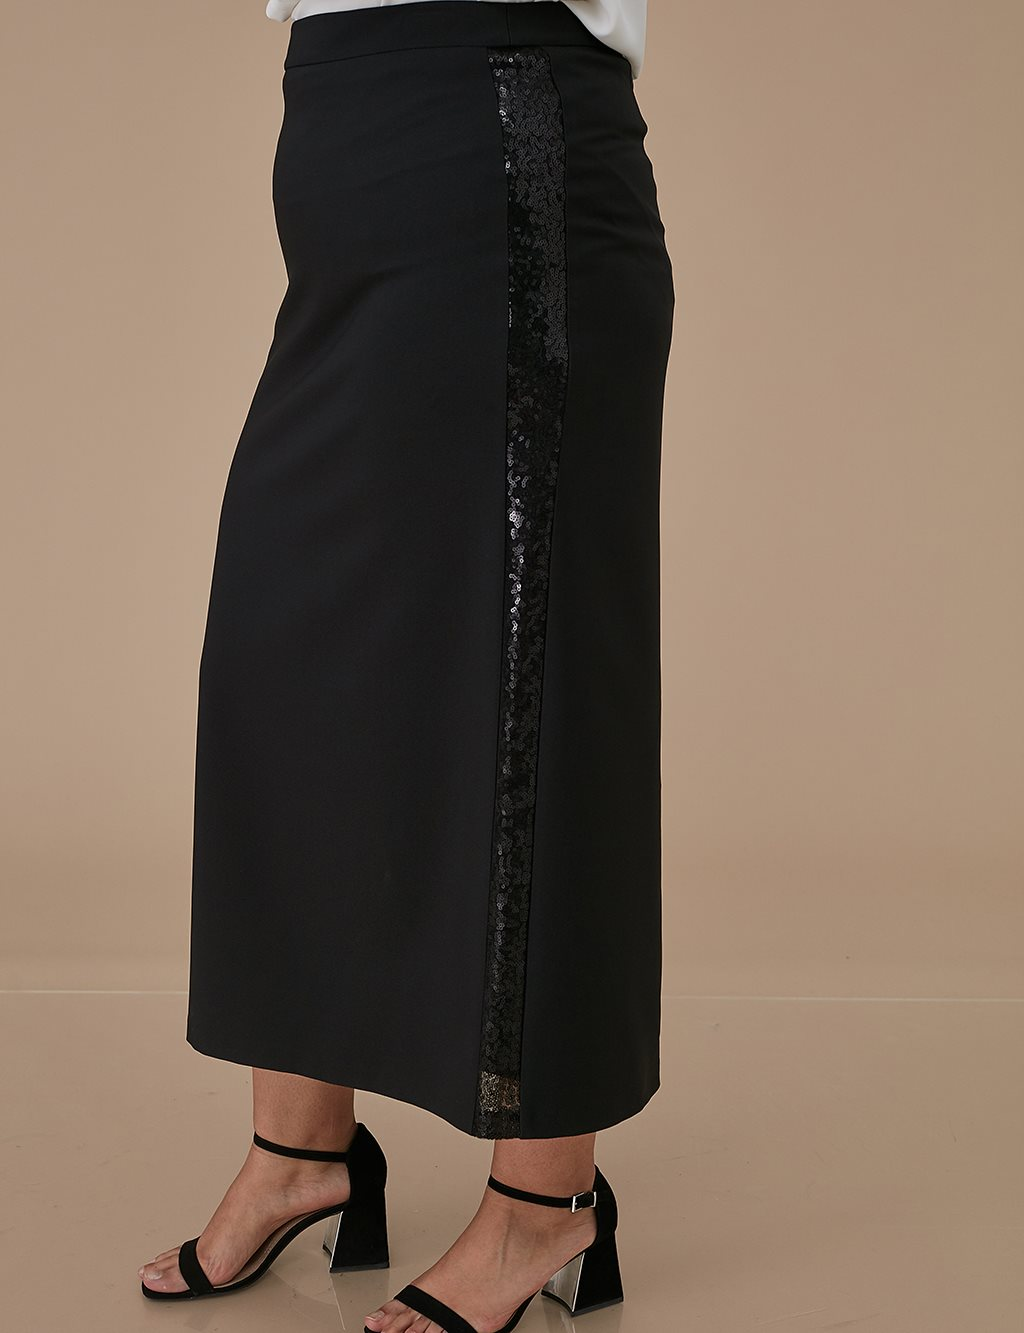 Skirt With Sequin Detailed A9 12041 Black